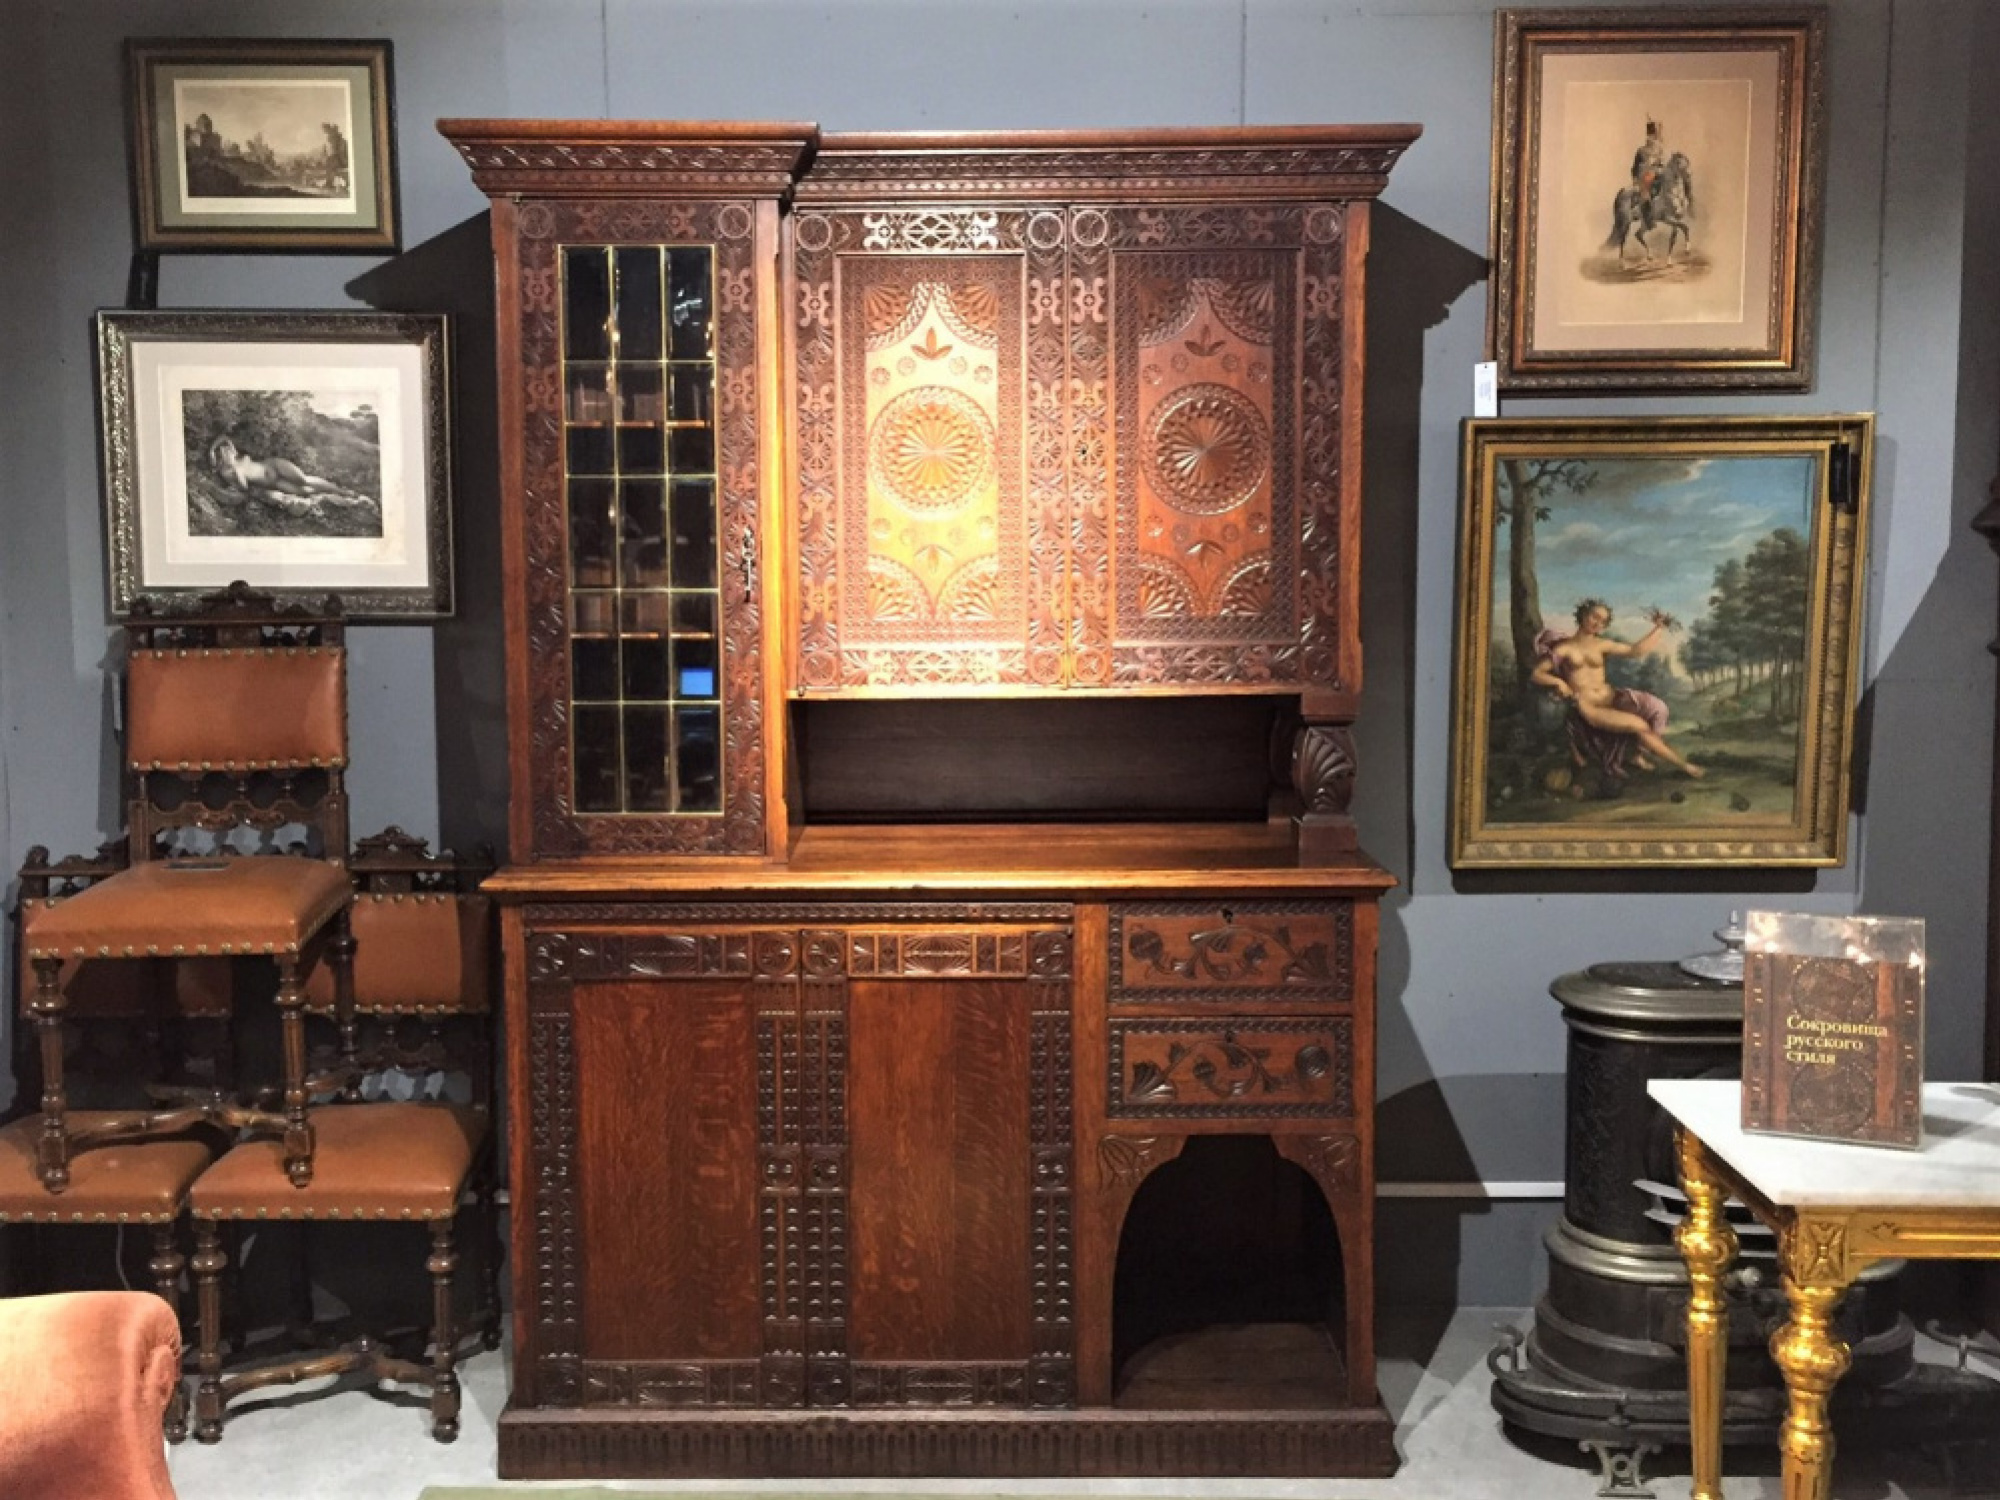 Three-part sideboard with stained-glass window in the Russian style, sketched by Elena Polenova. The